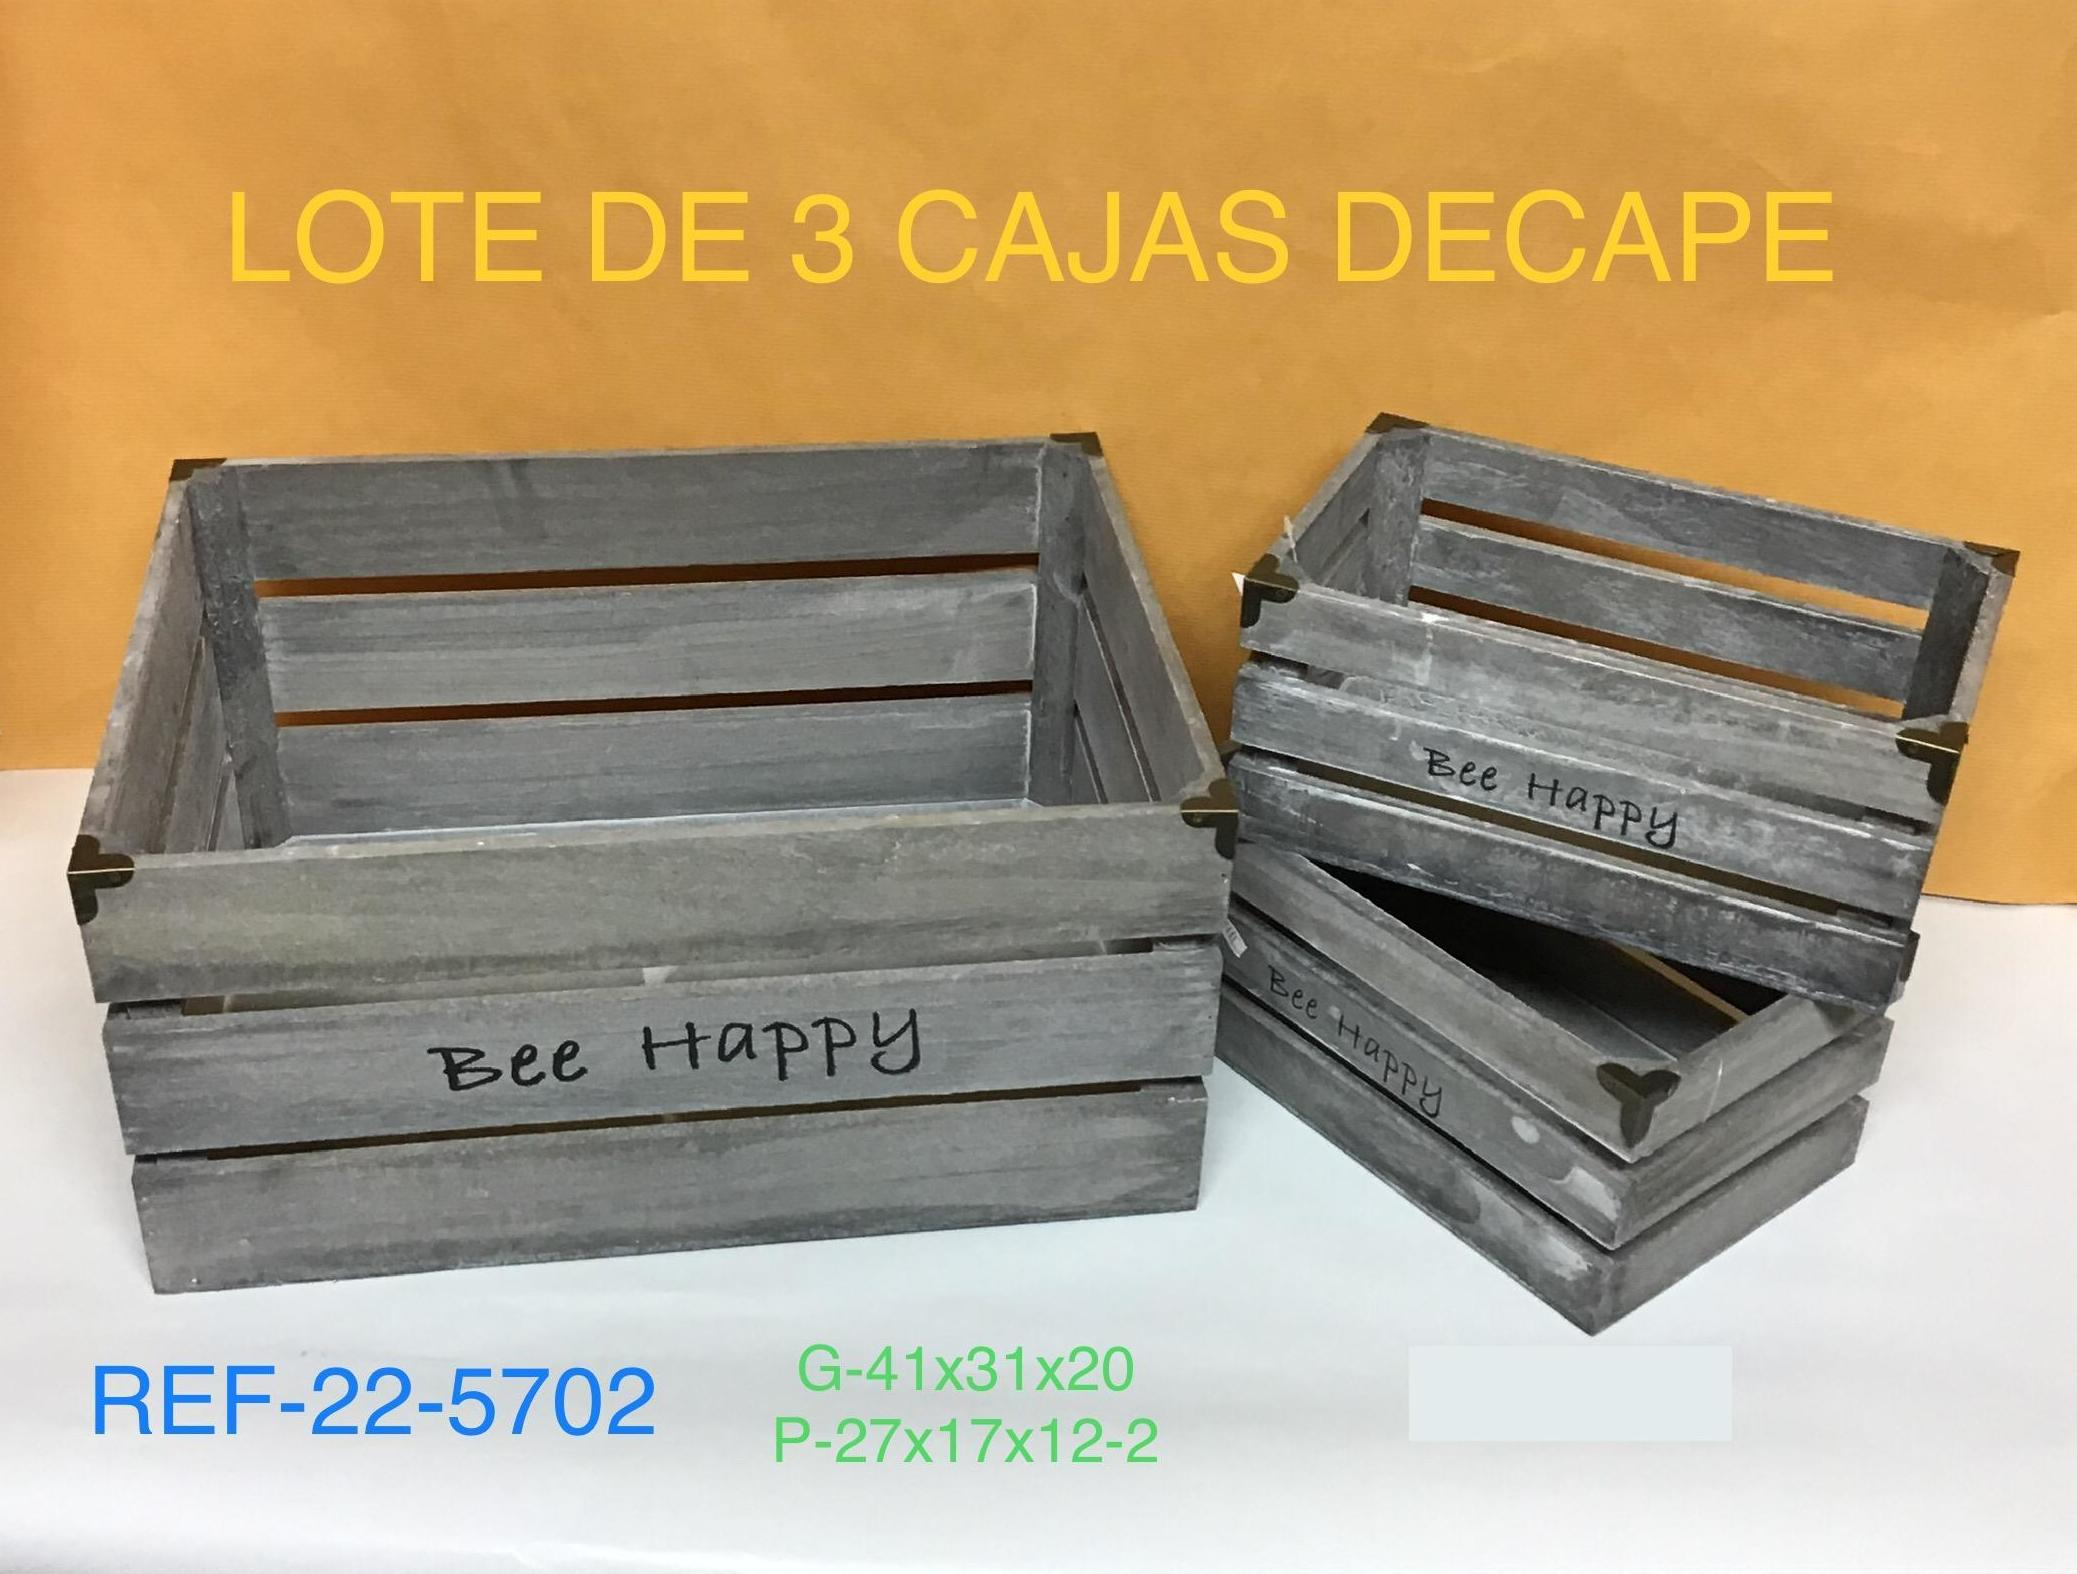 LOTE 3 CAJAS MADERA DECAPE BEE HAPPY